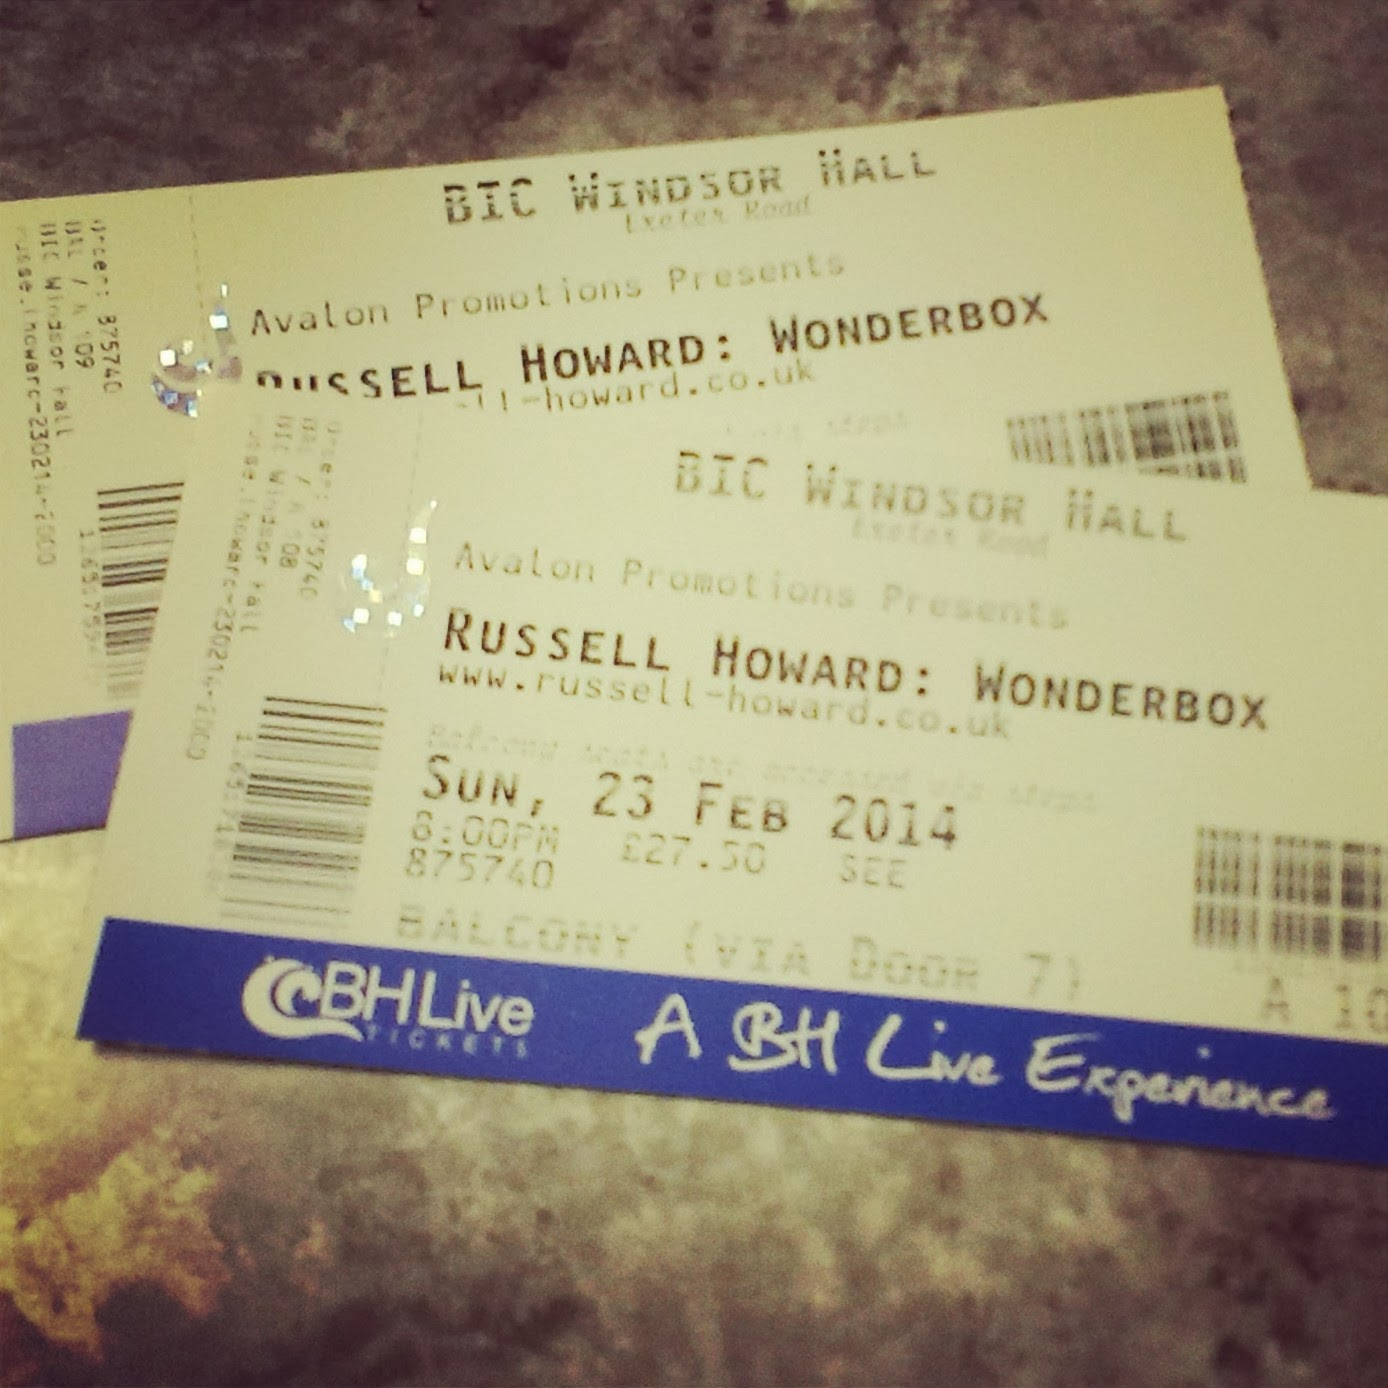 Russell Howard Tickets